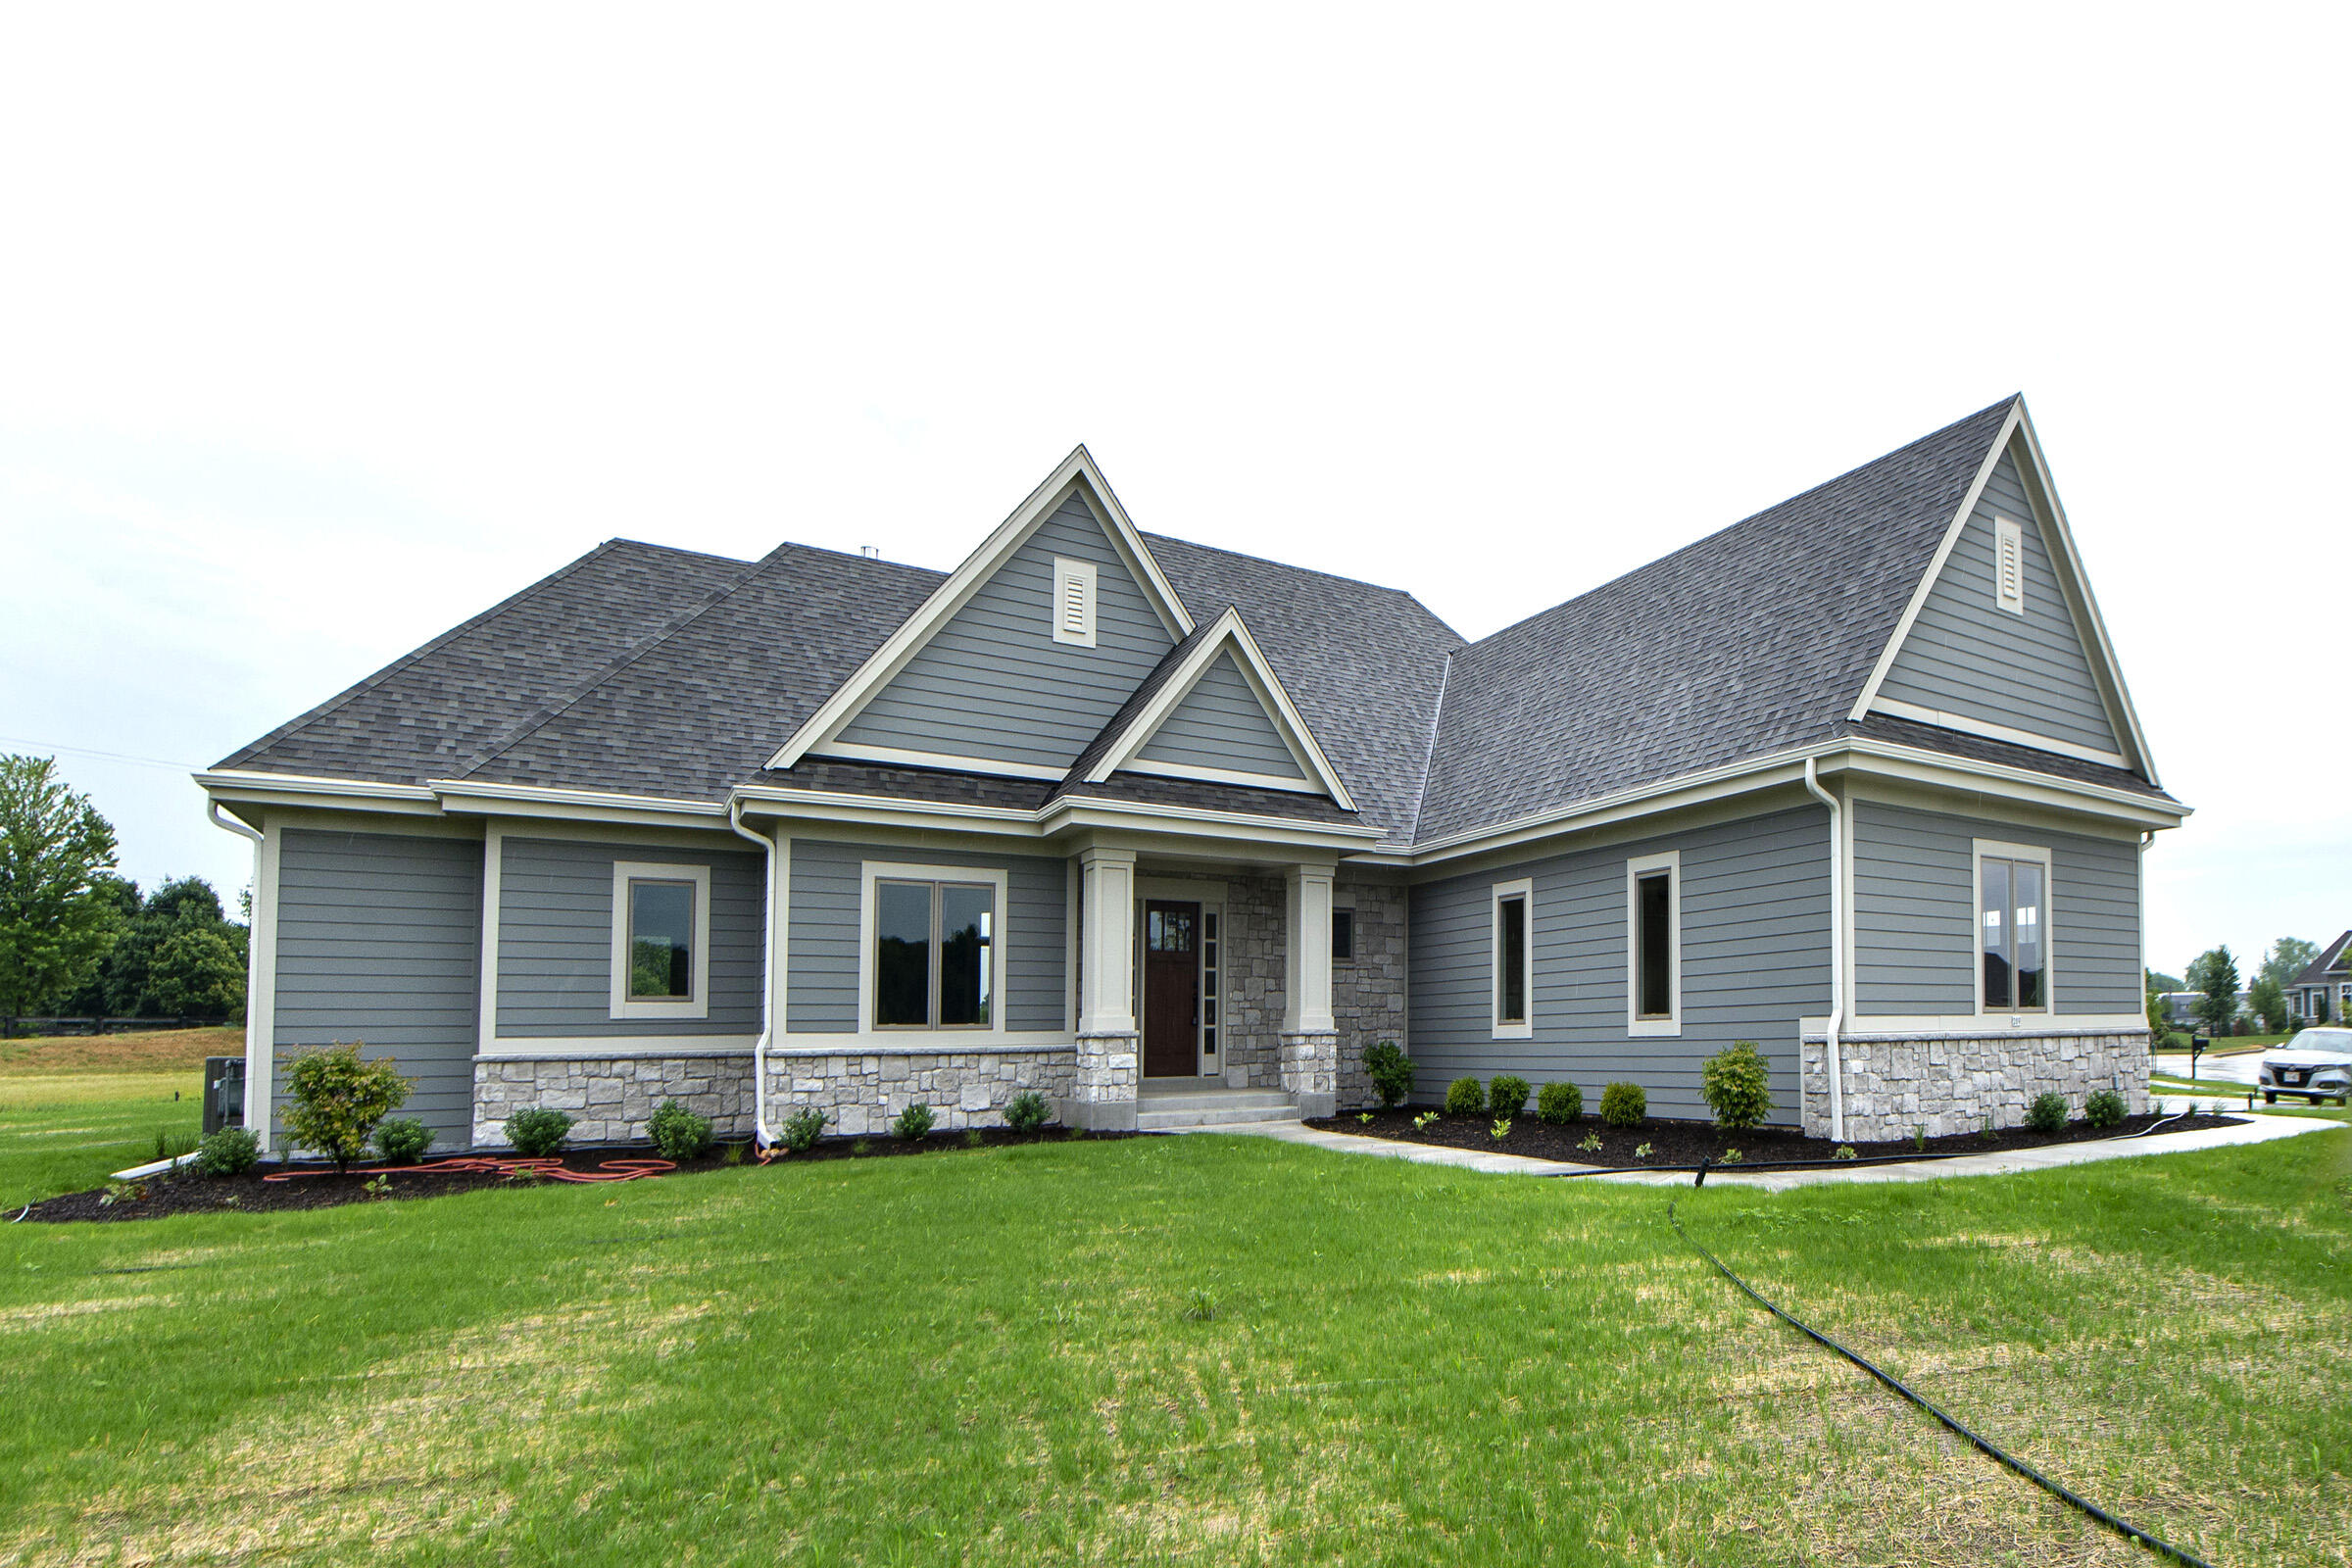 209 Four Winds Ct, Hartland, Wisconsin 53029, 4 Bedrooms Bedrooms, 10 Rooms Rooms,3 BathroomsBathrooms,Single-Family,For Sale,Four Winds Ct,1747321